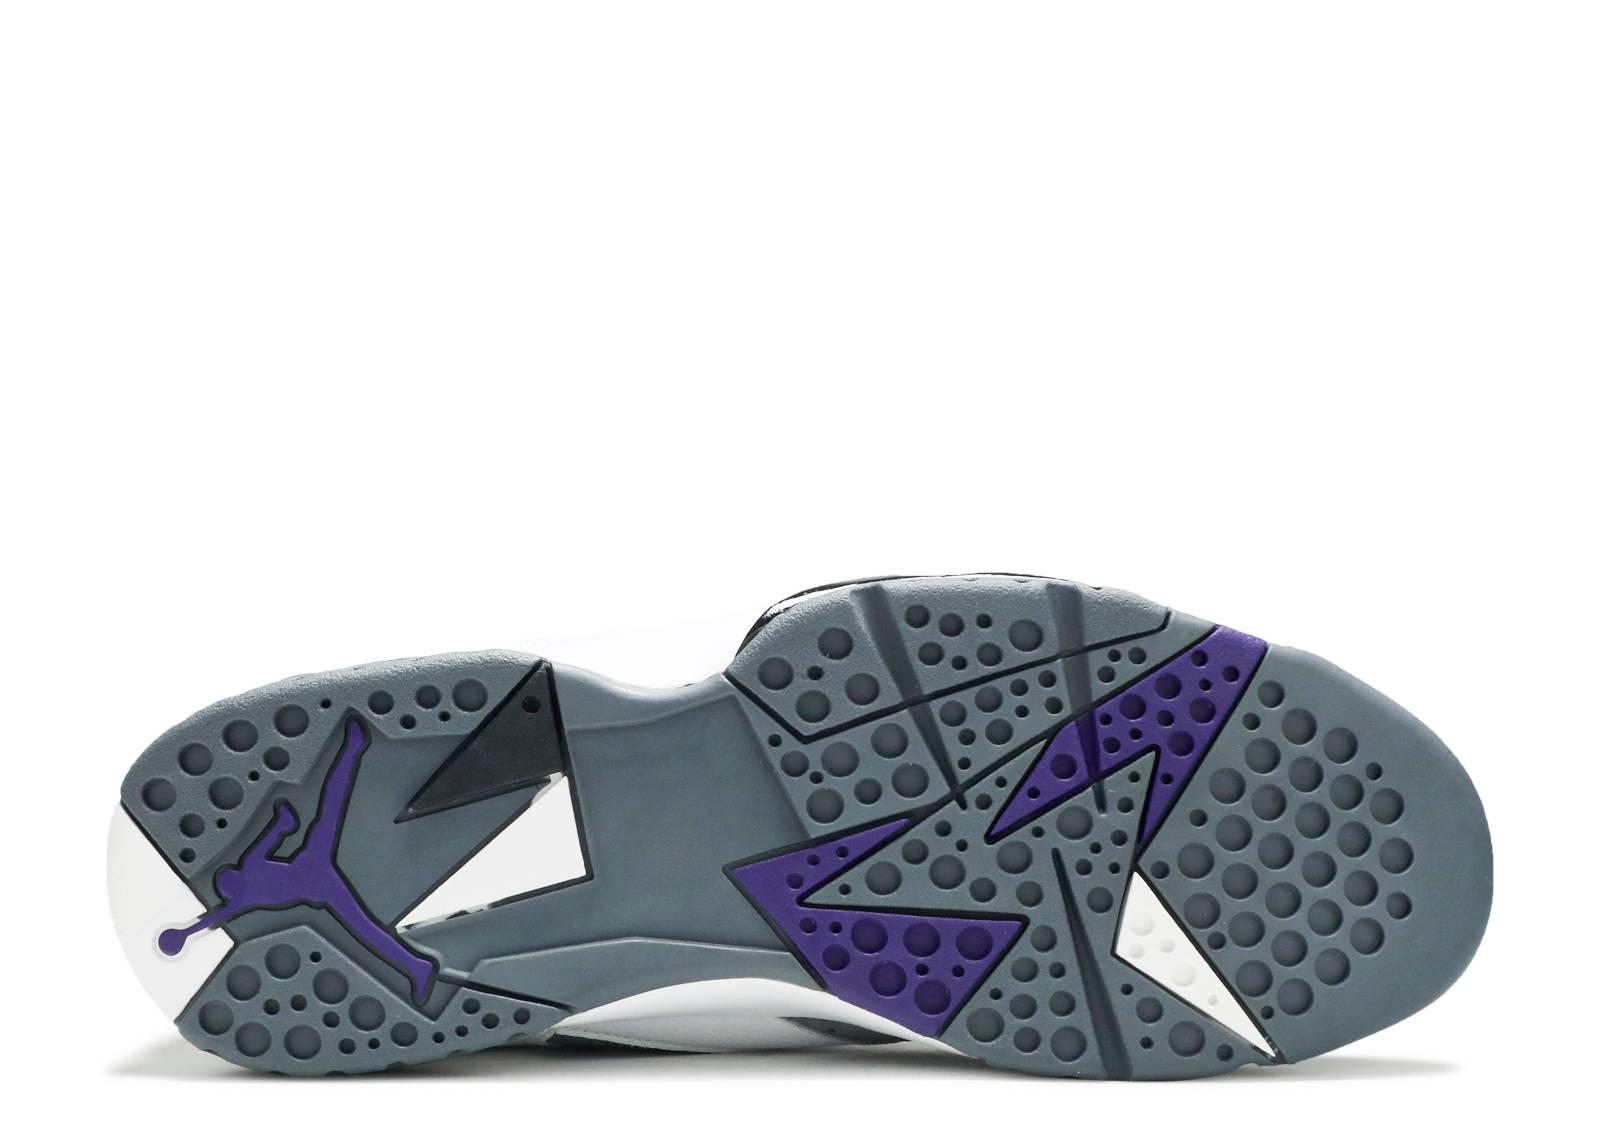 7719ff21134 Air Jordan 7 Retro - Air Jordan - 304775 151 - white varsity purple-flint  grey